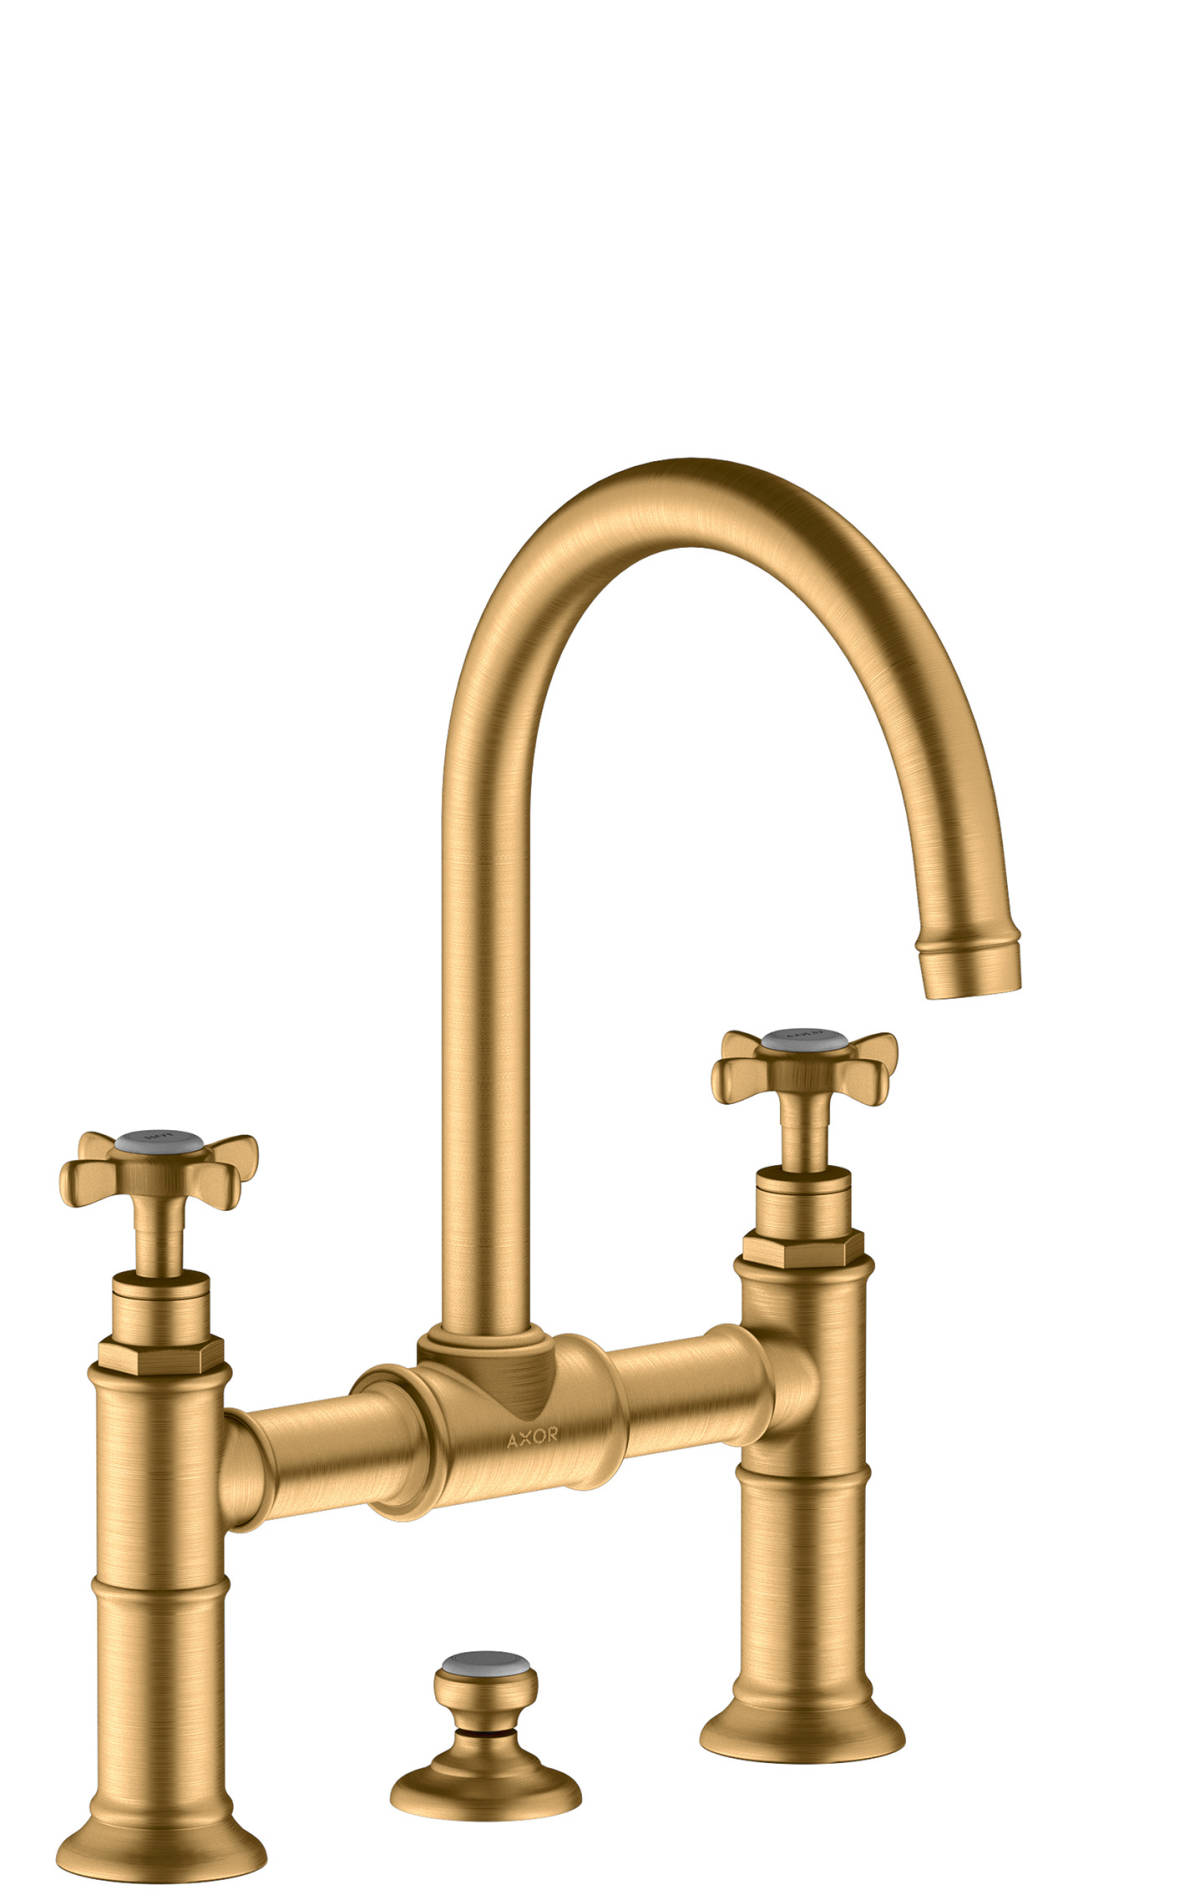 2-handle basin mixer 220 with cross handles and pop-up waste set, Brushed Brass, 16510950